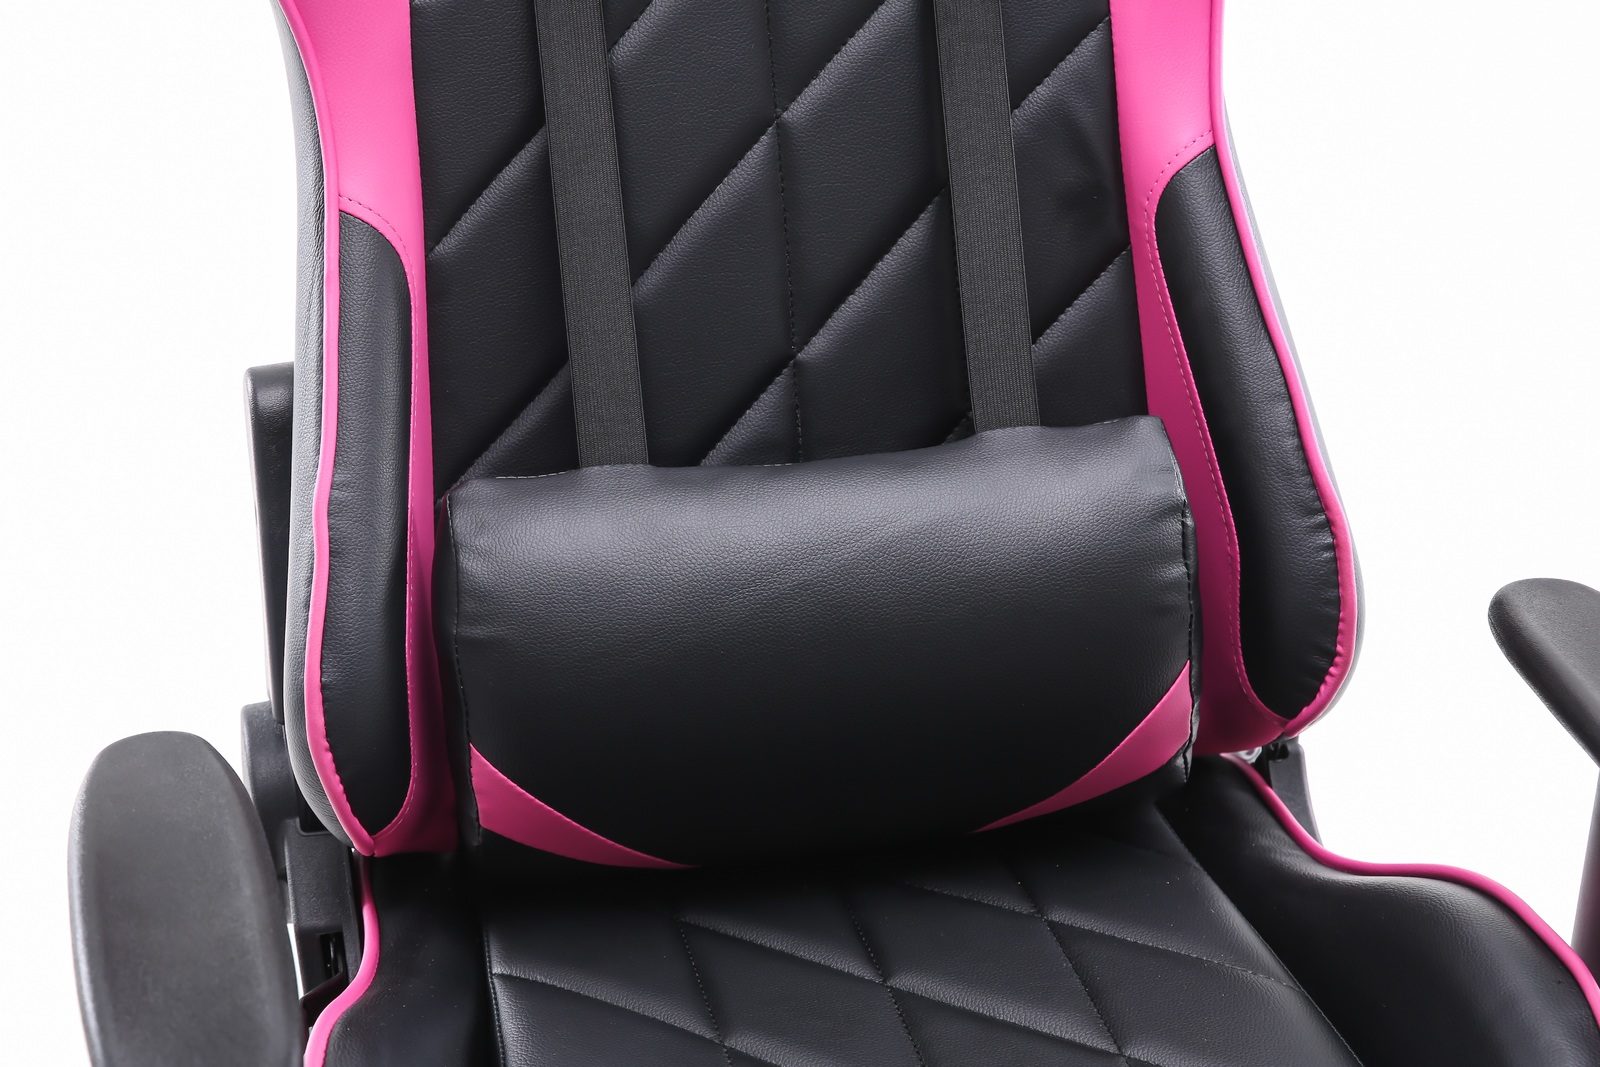 Playmax Elite Gaming Chair - Pink and Black for  image